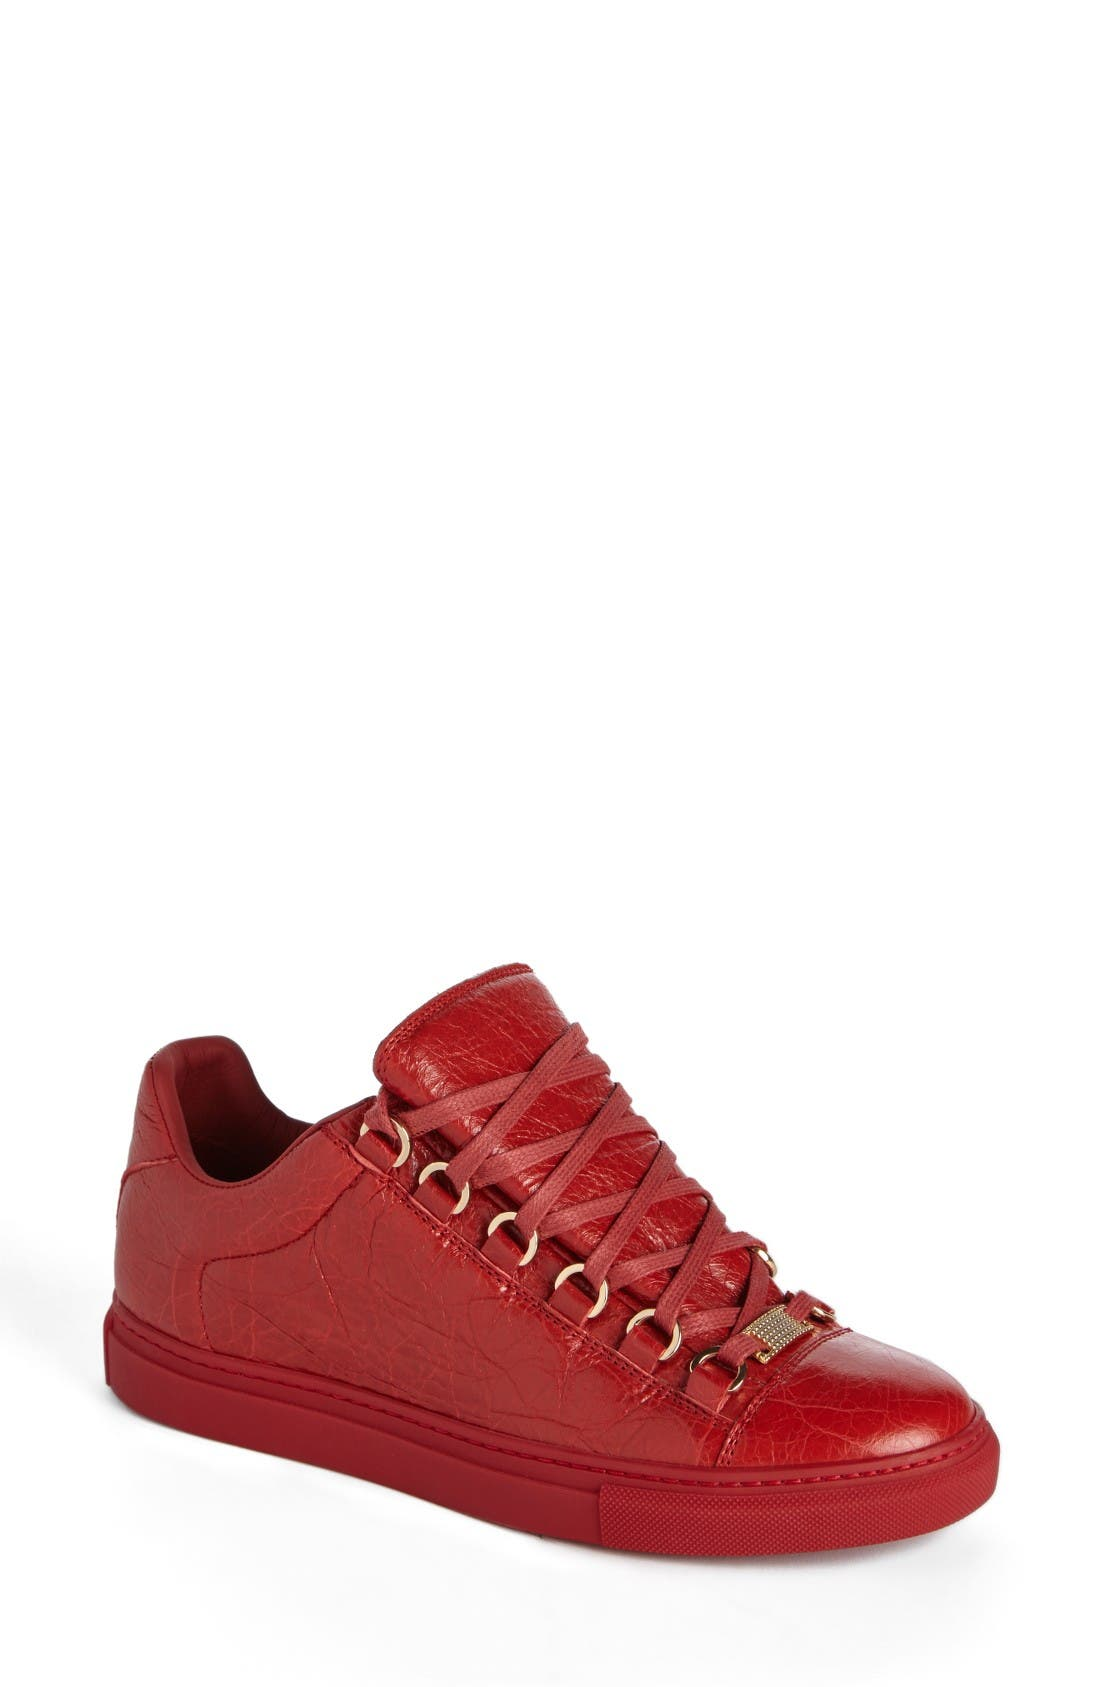 Low Top Sneaker,                         Main,                         color, Red Leather